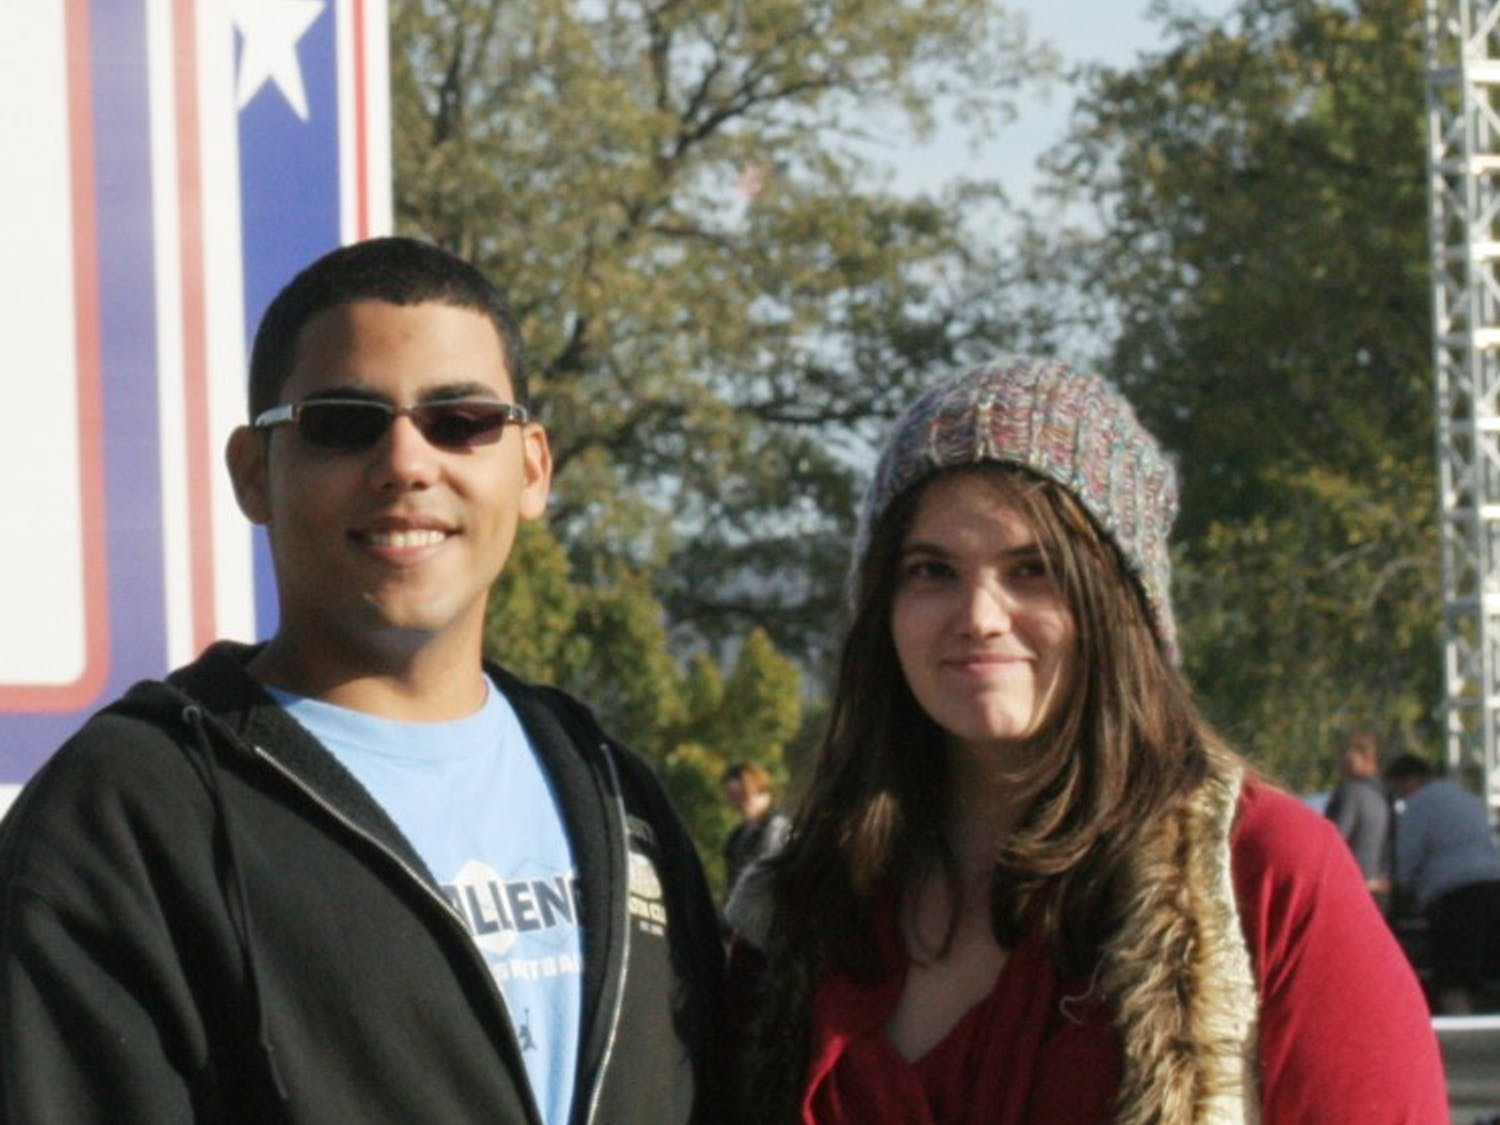 UNC freshmen Hector Brignoni and Chesse DeCain attended the Rally to Restore Sanity.